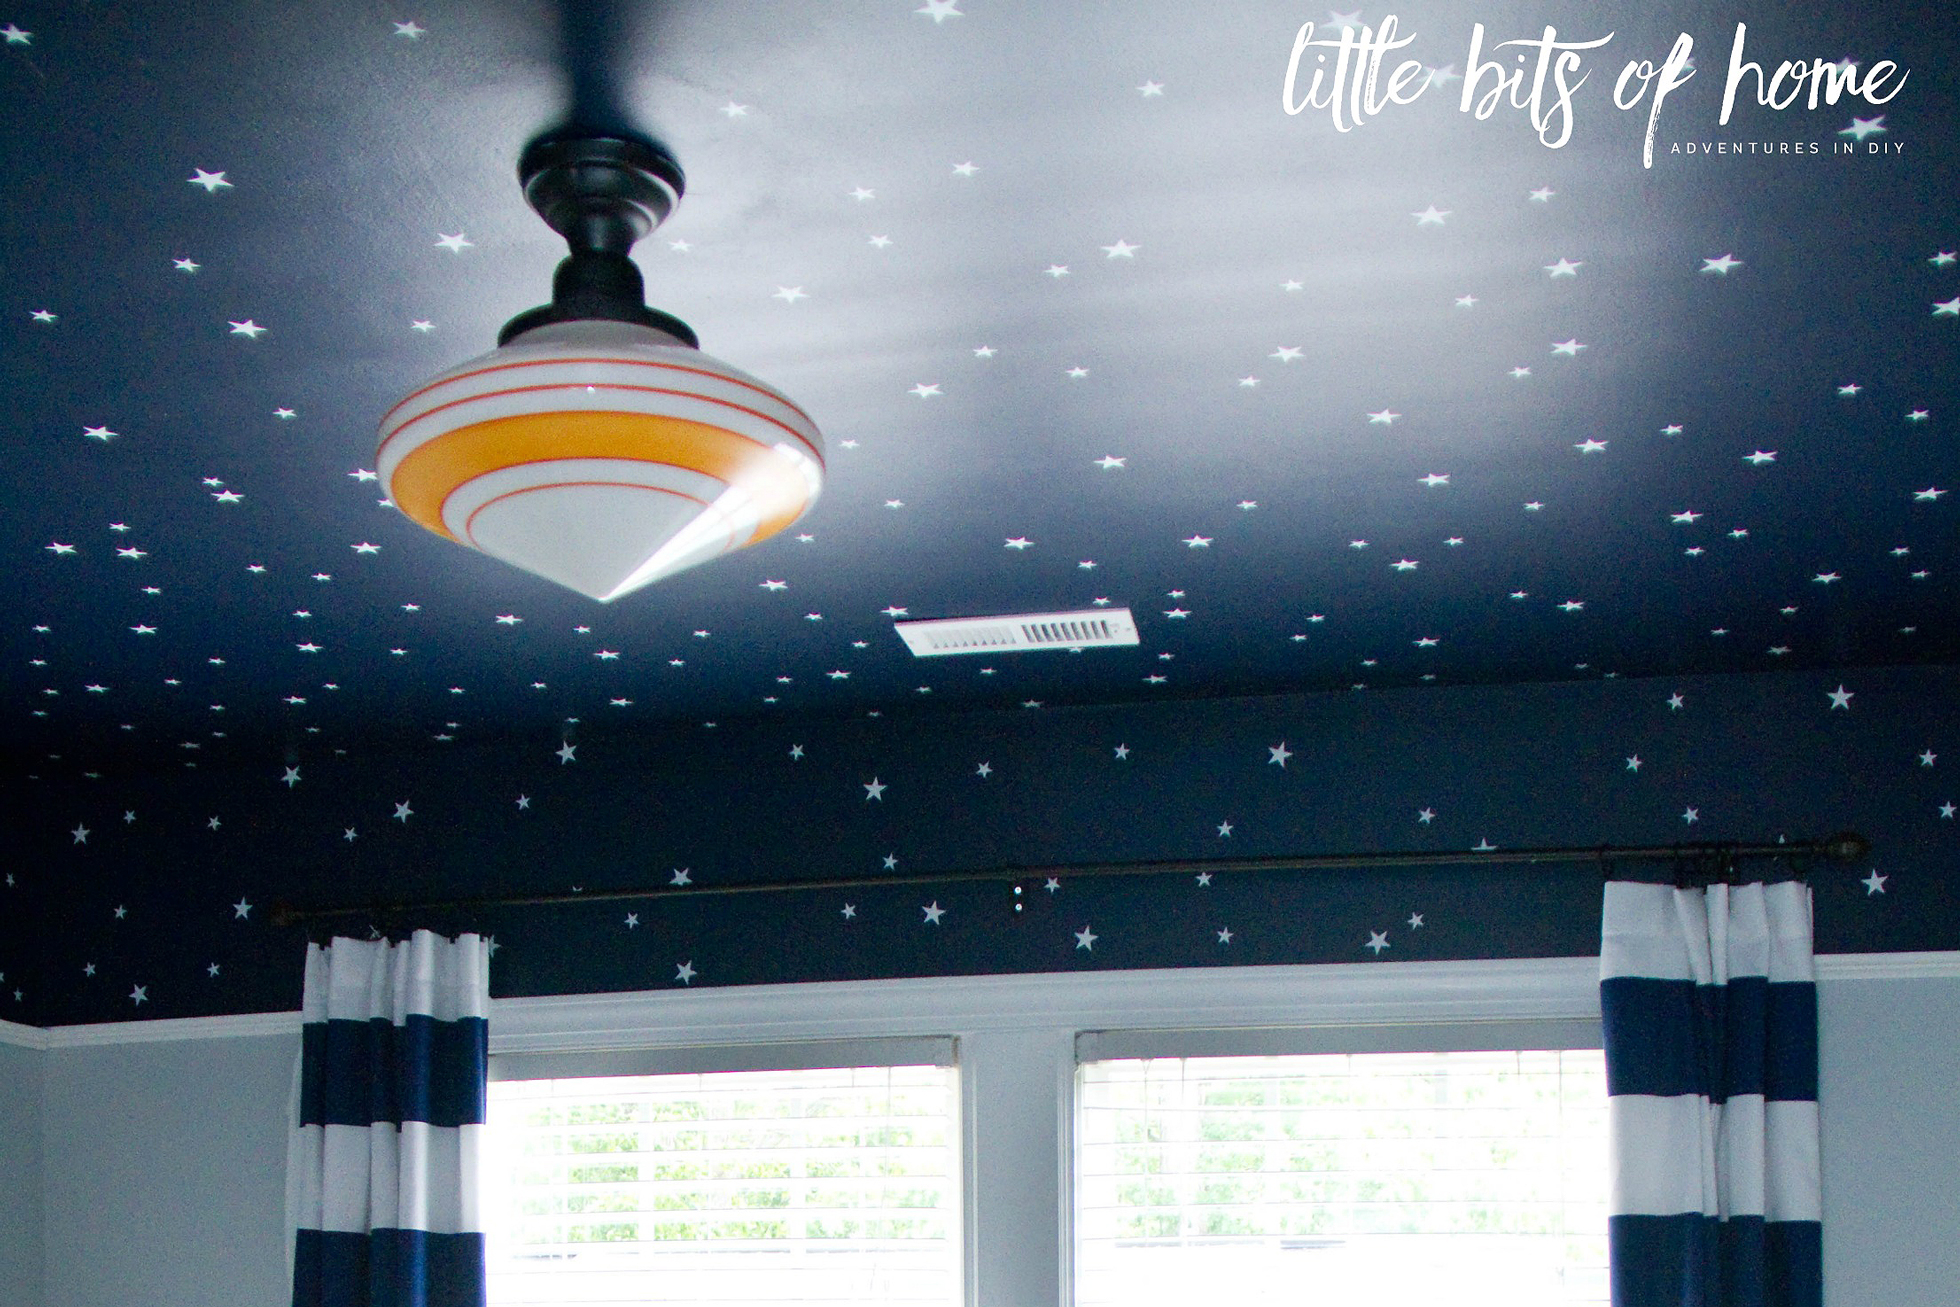 A dark blue ceiling with white stars and BB-8 light fixture